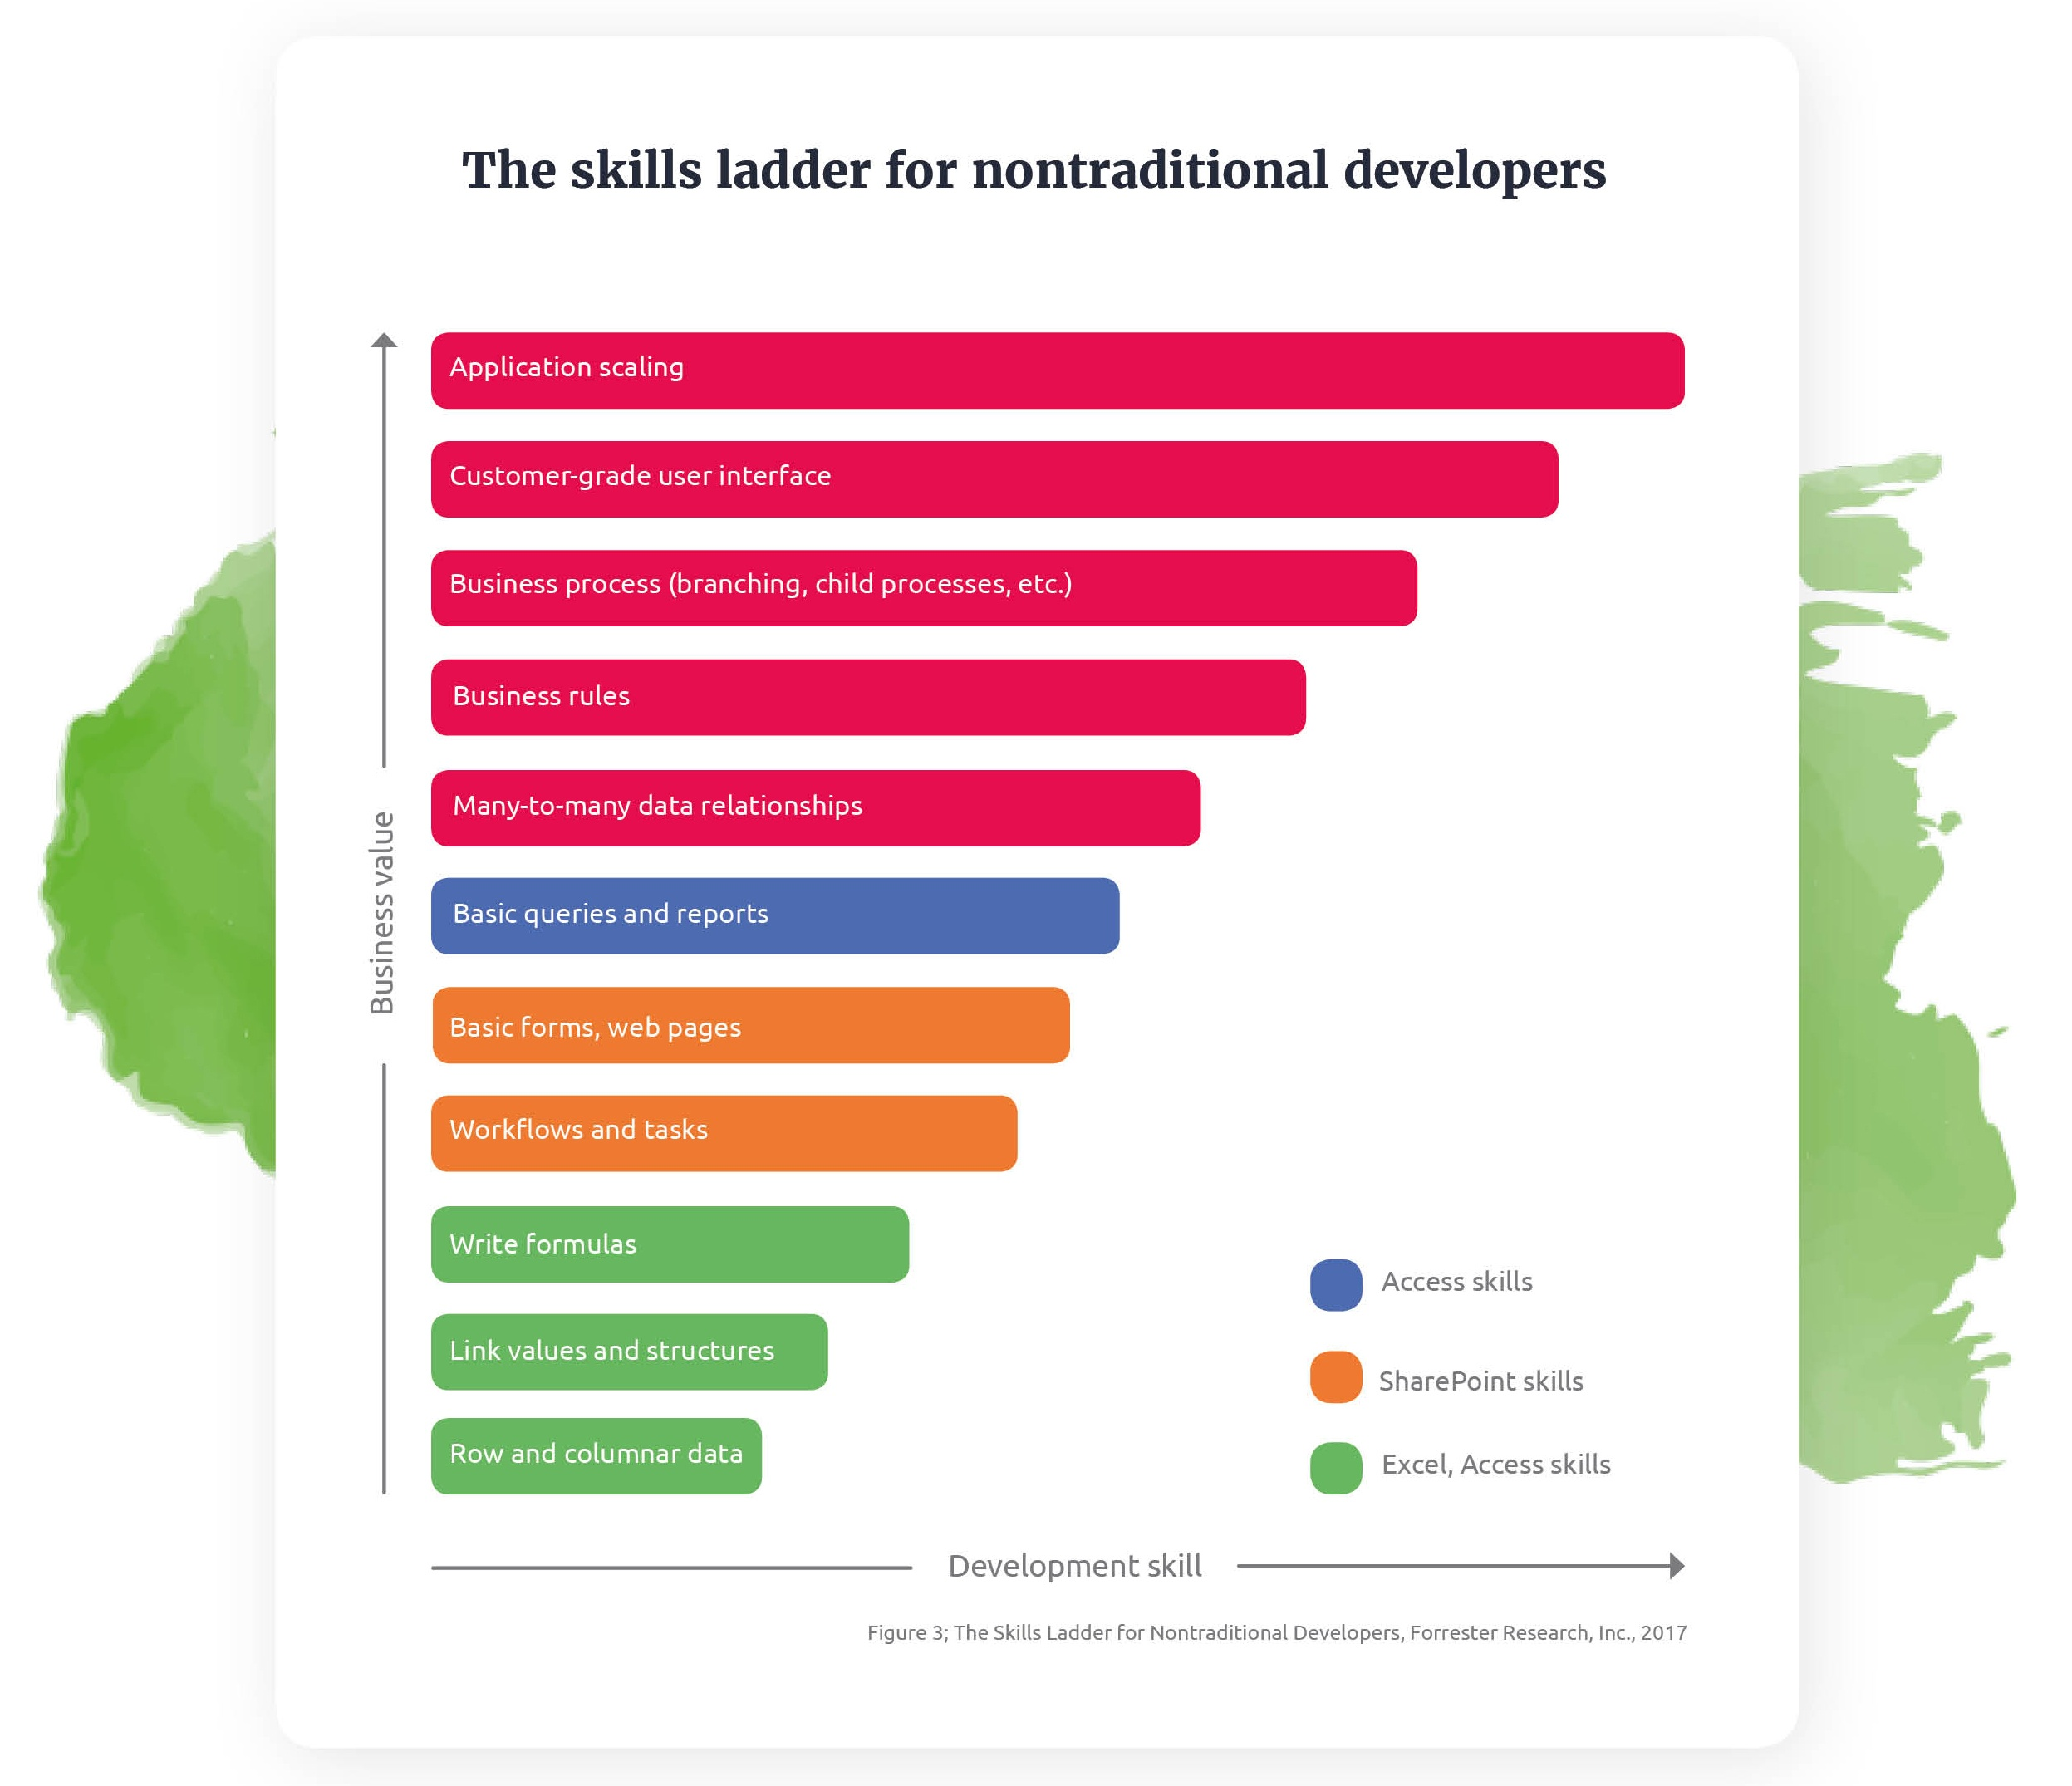 A4-Whitepaper-CitizenDevelopers-skill-ladder-1